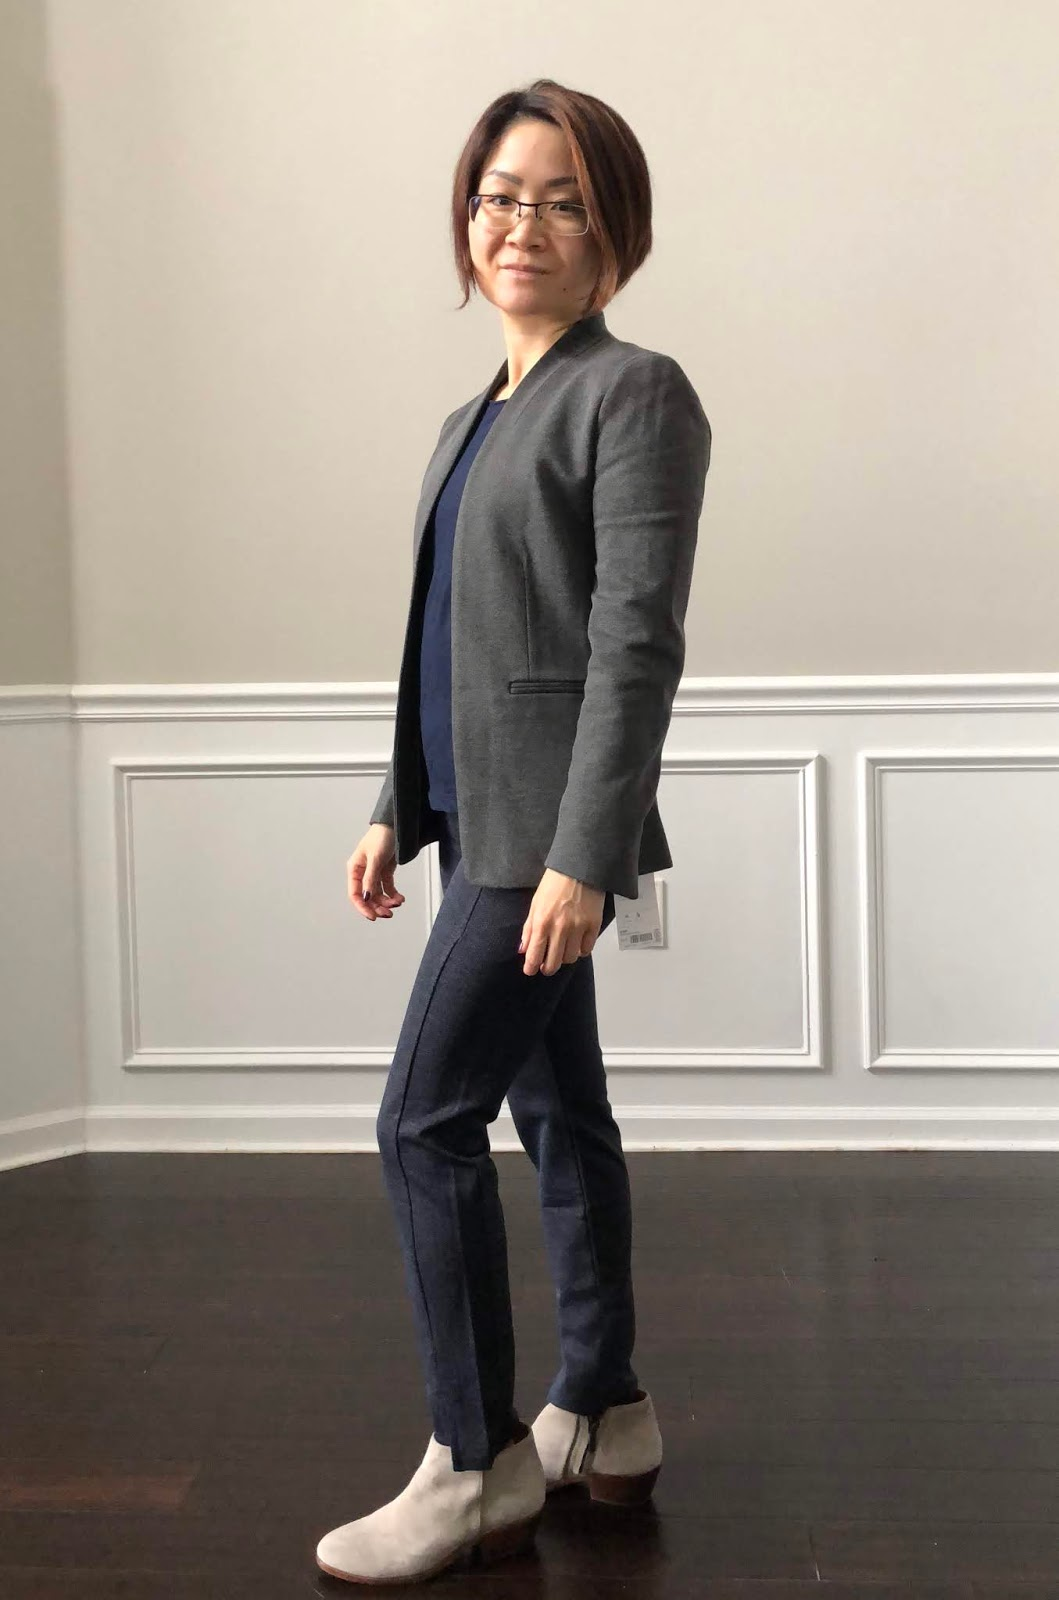 42254ad8c547 It s a fairly budget friendly blazer that can be worn to work and on the  weekends paired with jeans. Right now J.Crew is having a 30% off with code  AUTUMN.